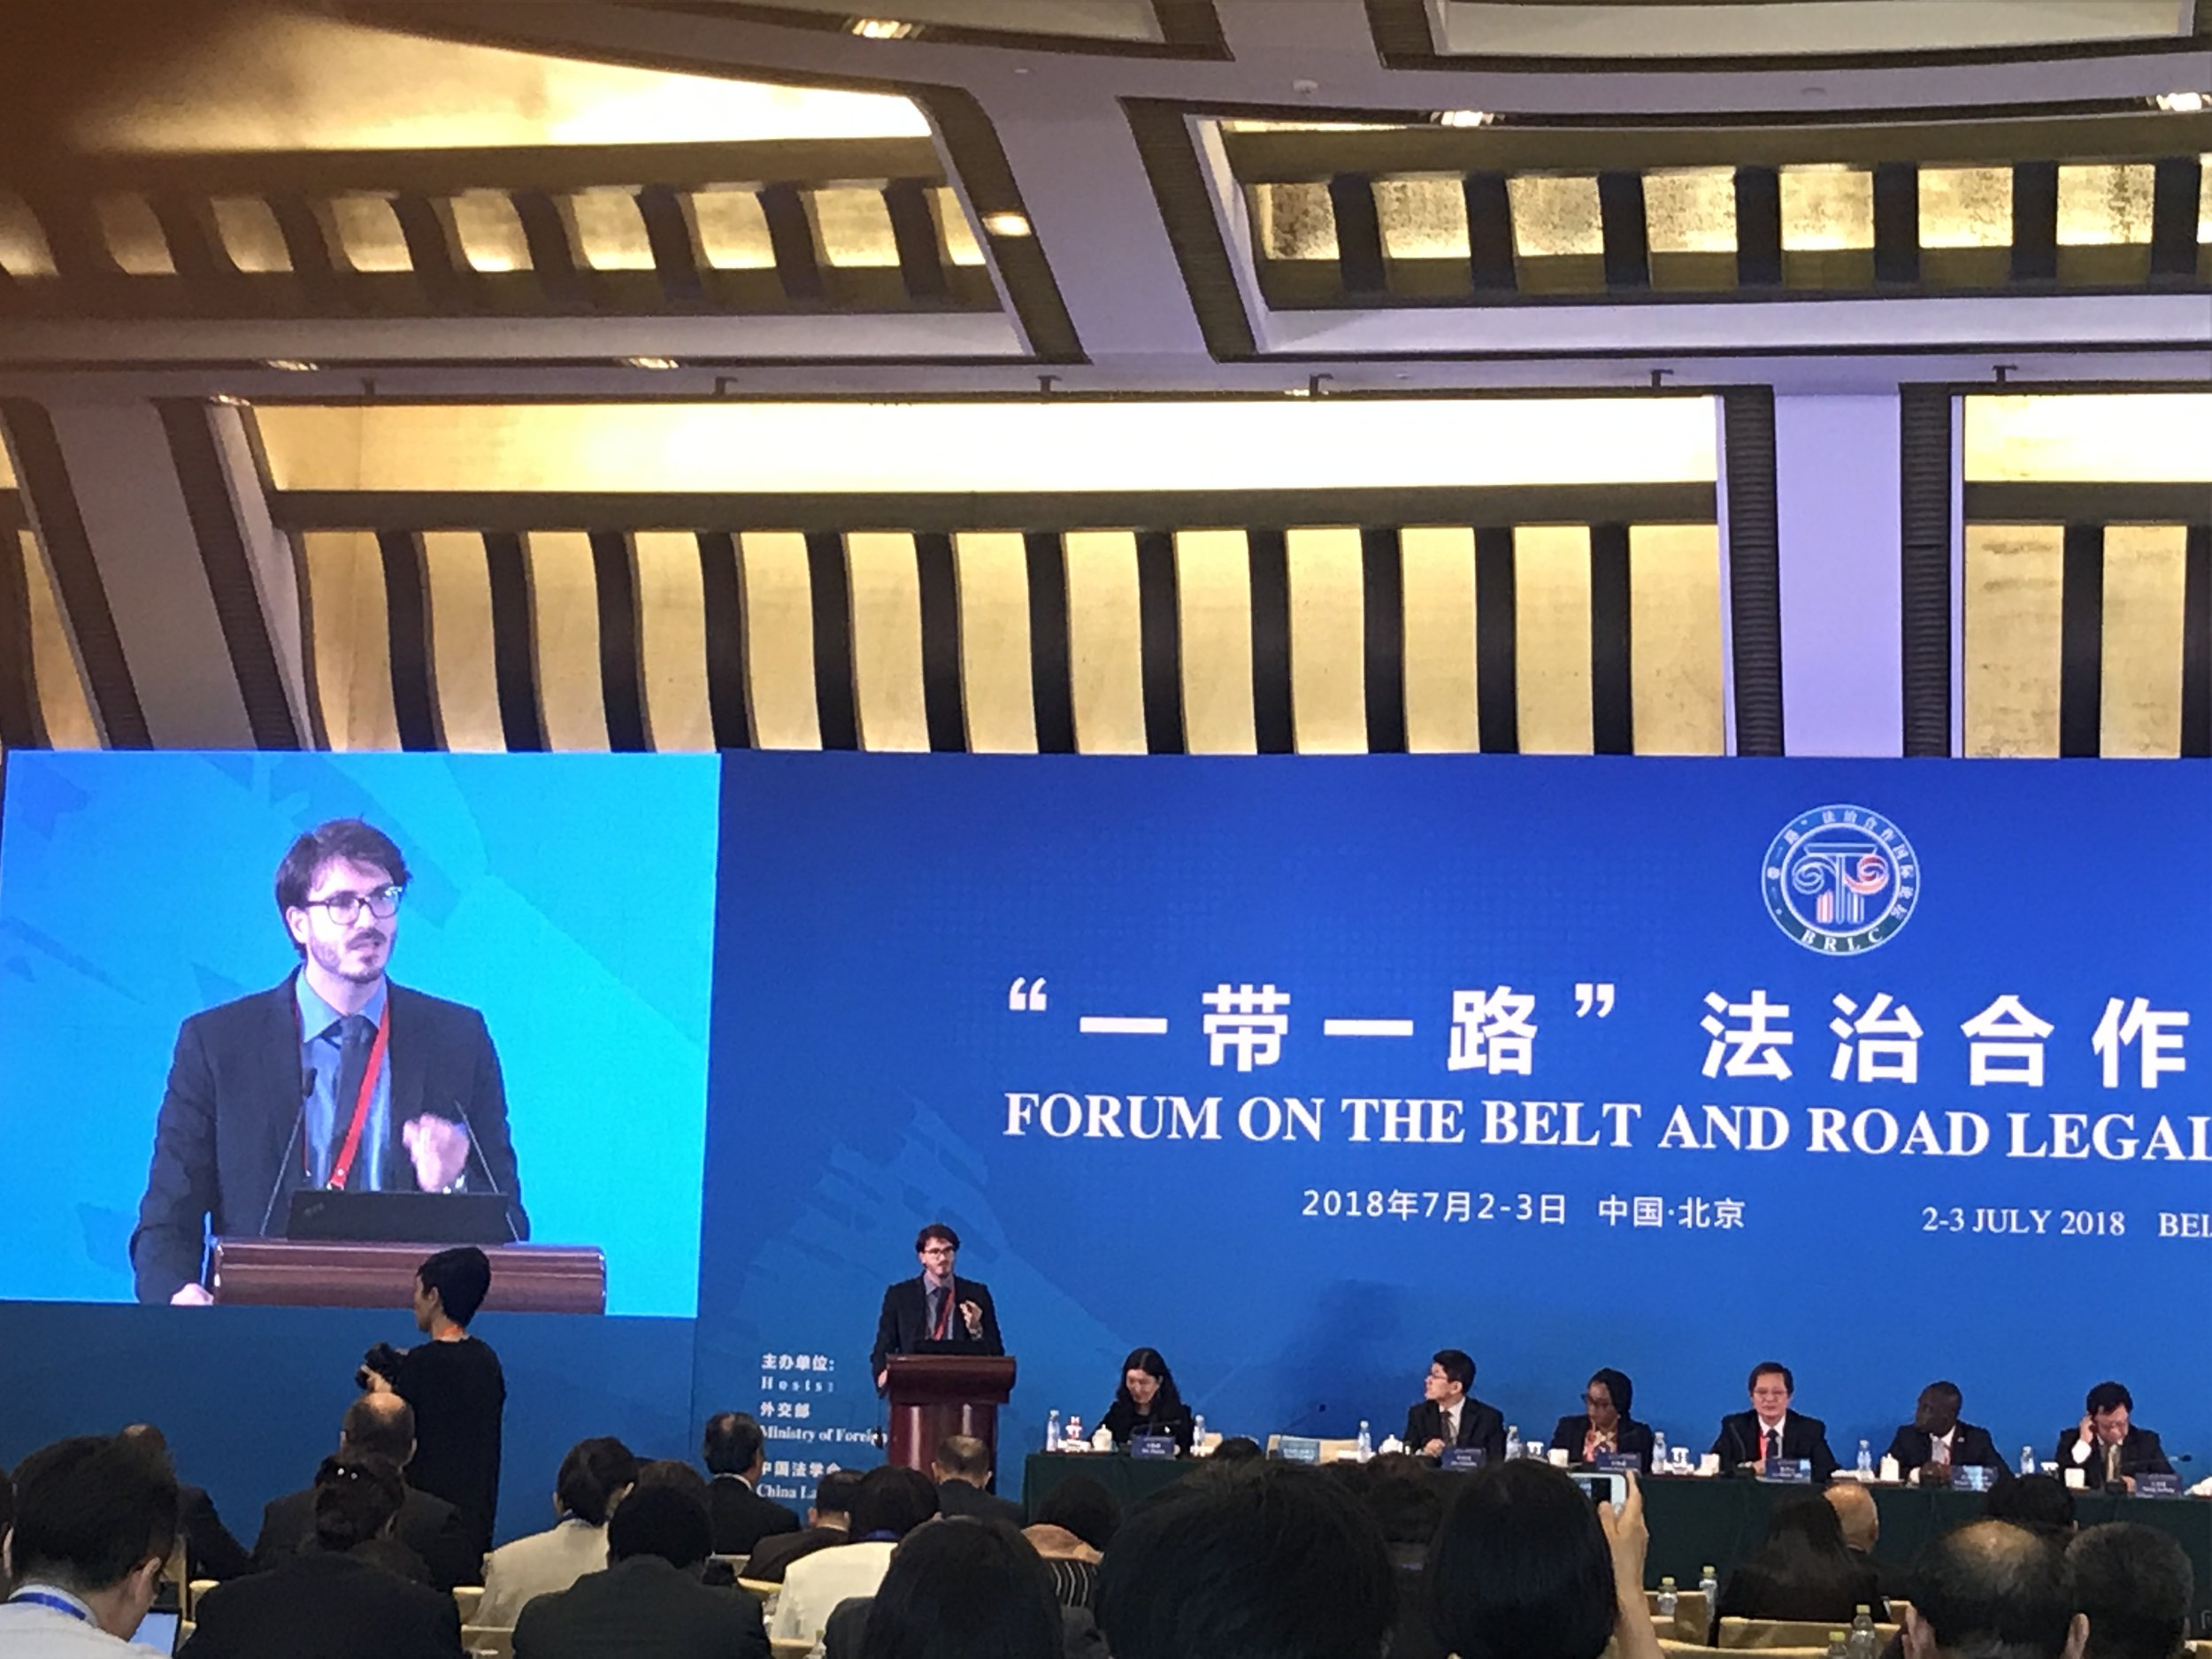 Ministry of Foreign Affairs of the People's Republic of China, China Law Society,   Forum on the Belt and Road Legal Cooperation  , Implications of the Belt and Road Initiative for the International Legal Order, Beijing, July 2018